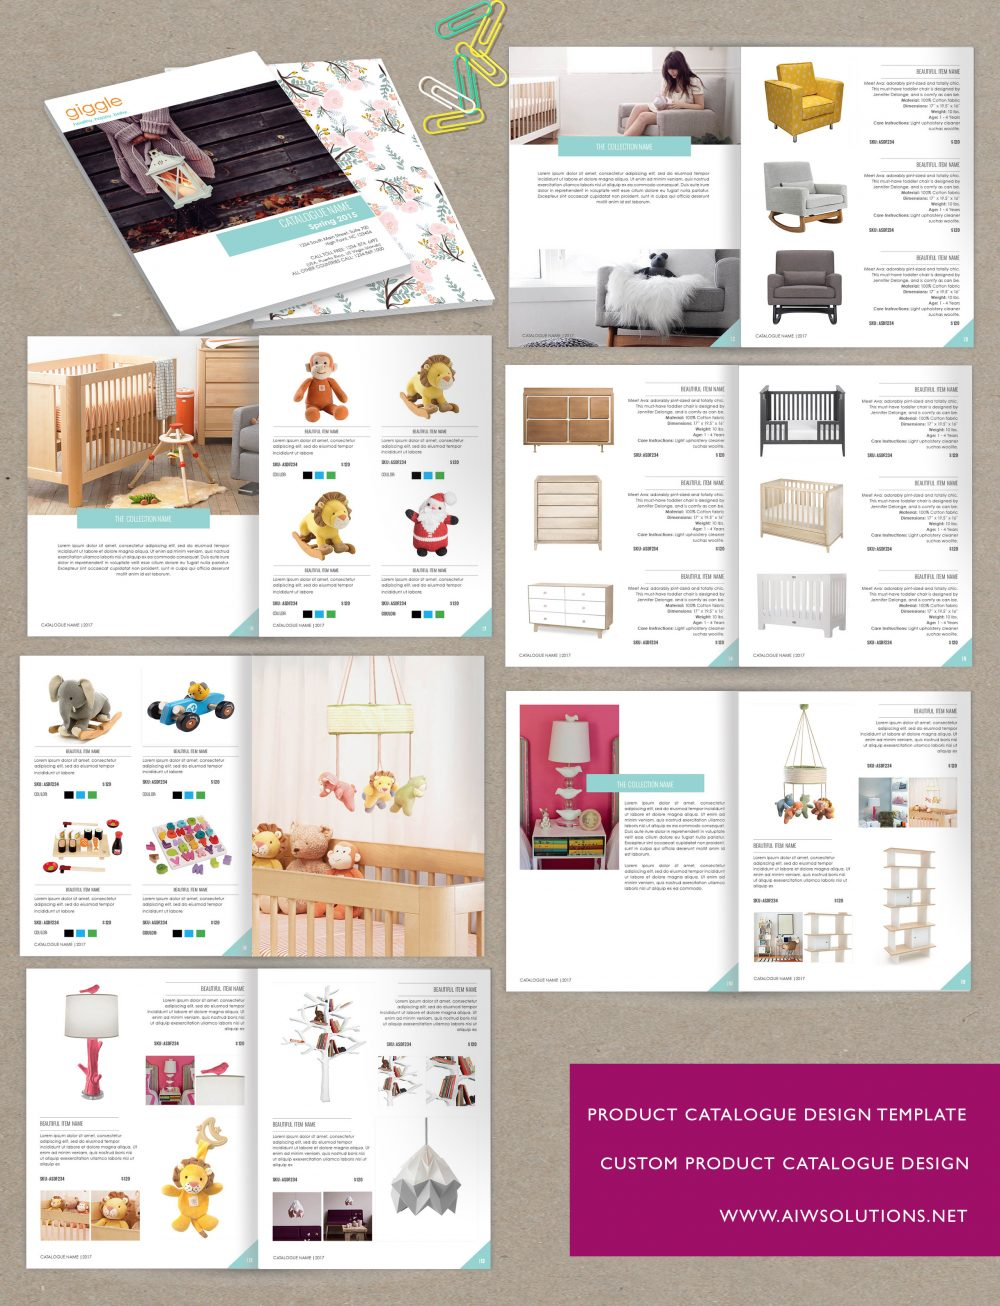 Product Catalog Template For Hat Catalog Shoe Catalog Home Decorators Catalog Best Ideas of Home Decor and Design [homedecoratorscatalog.us]